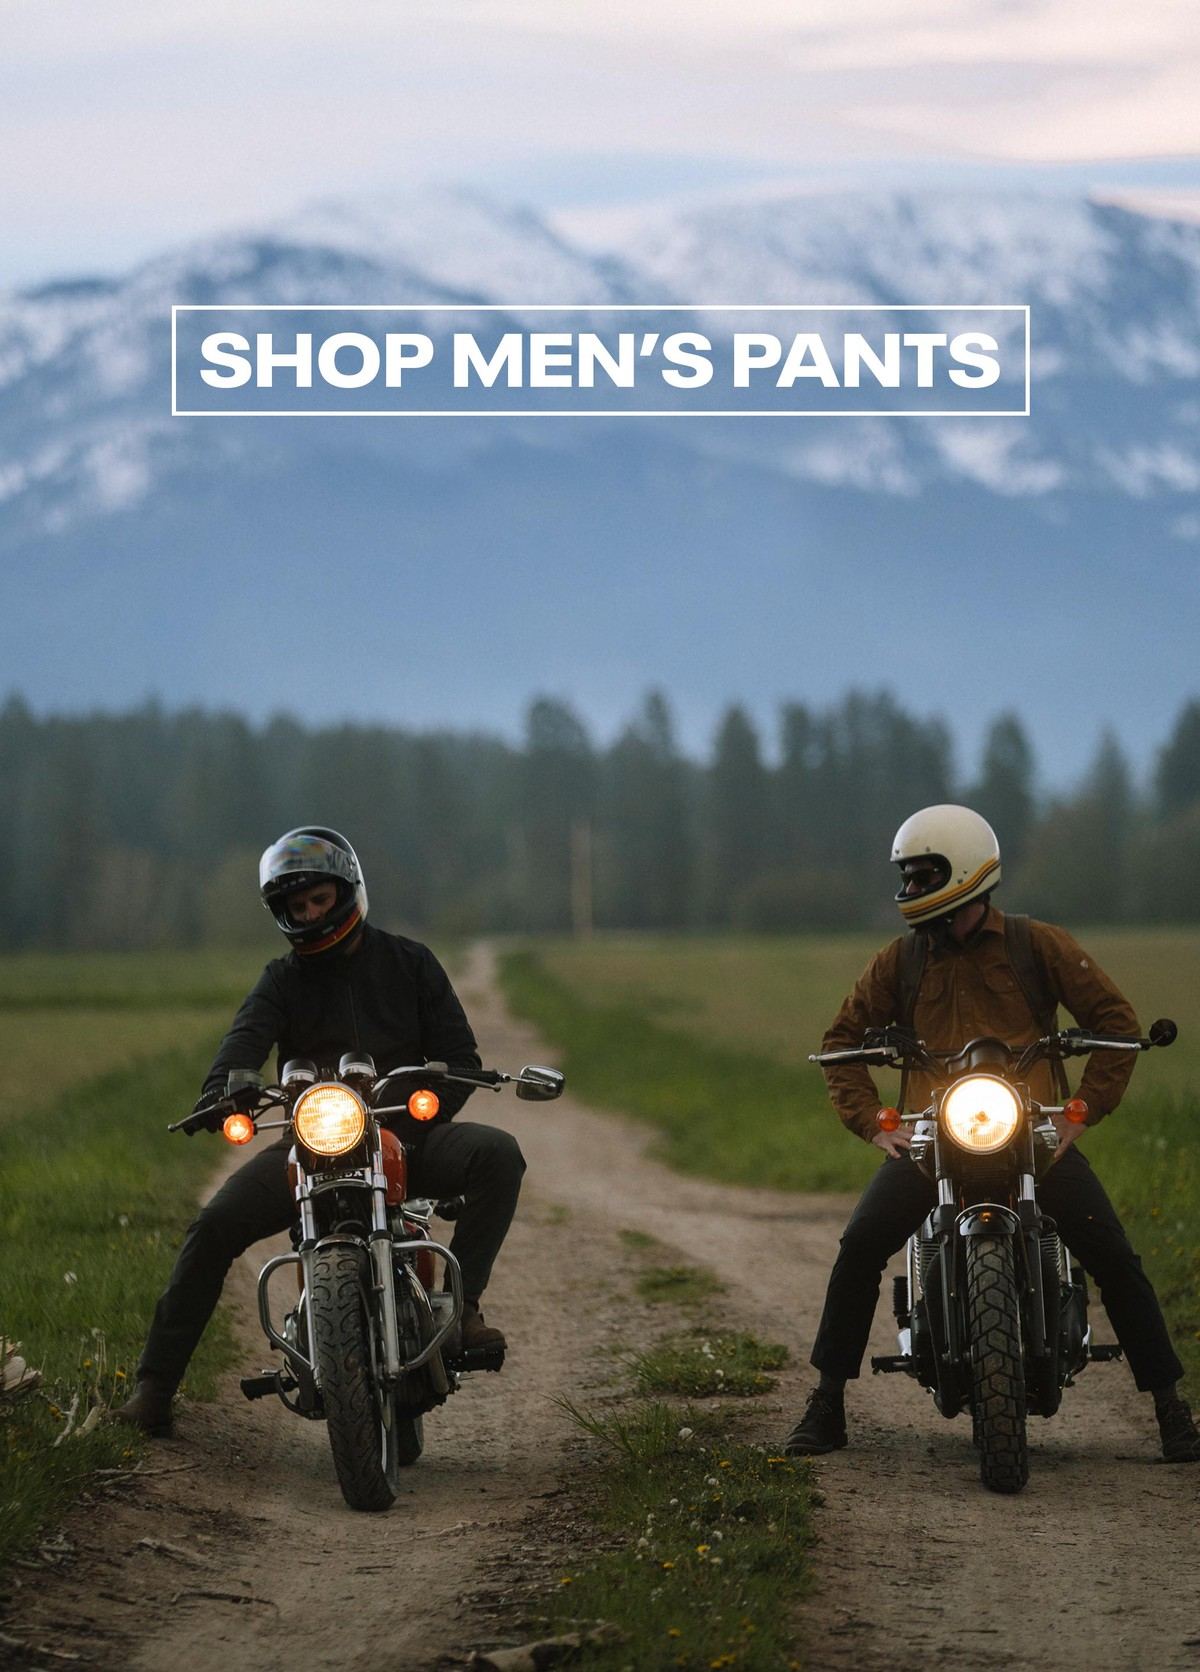 Two Men In Outdoor Clothing On A Motocycle - Taken from KUHL Clothing Home Page